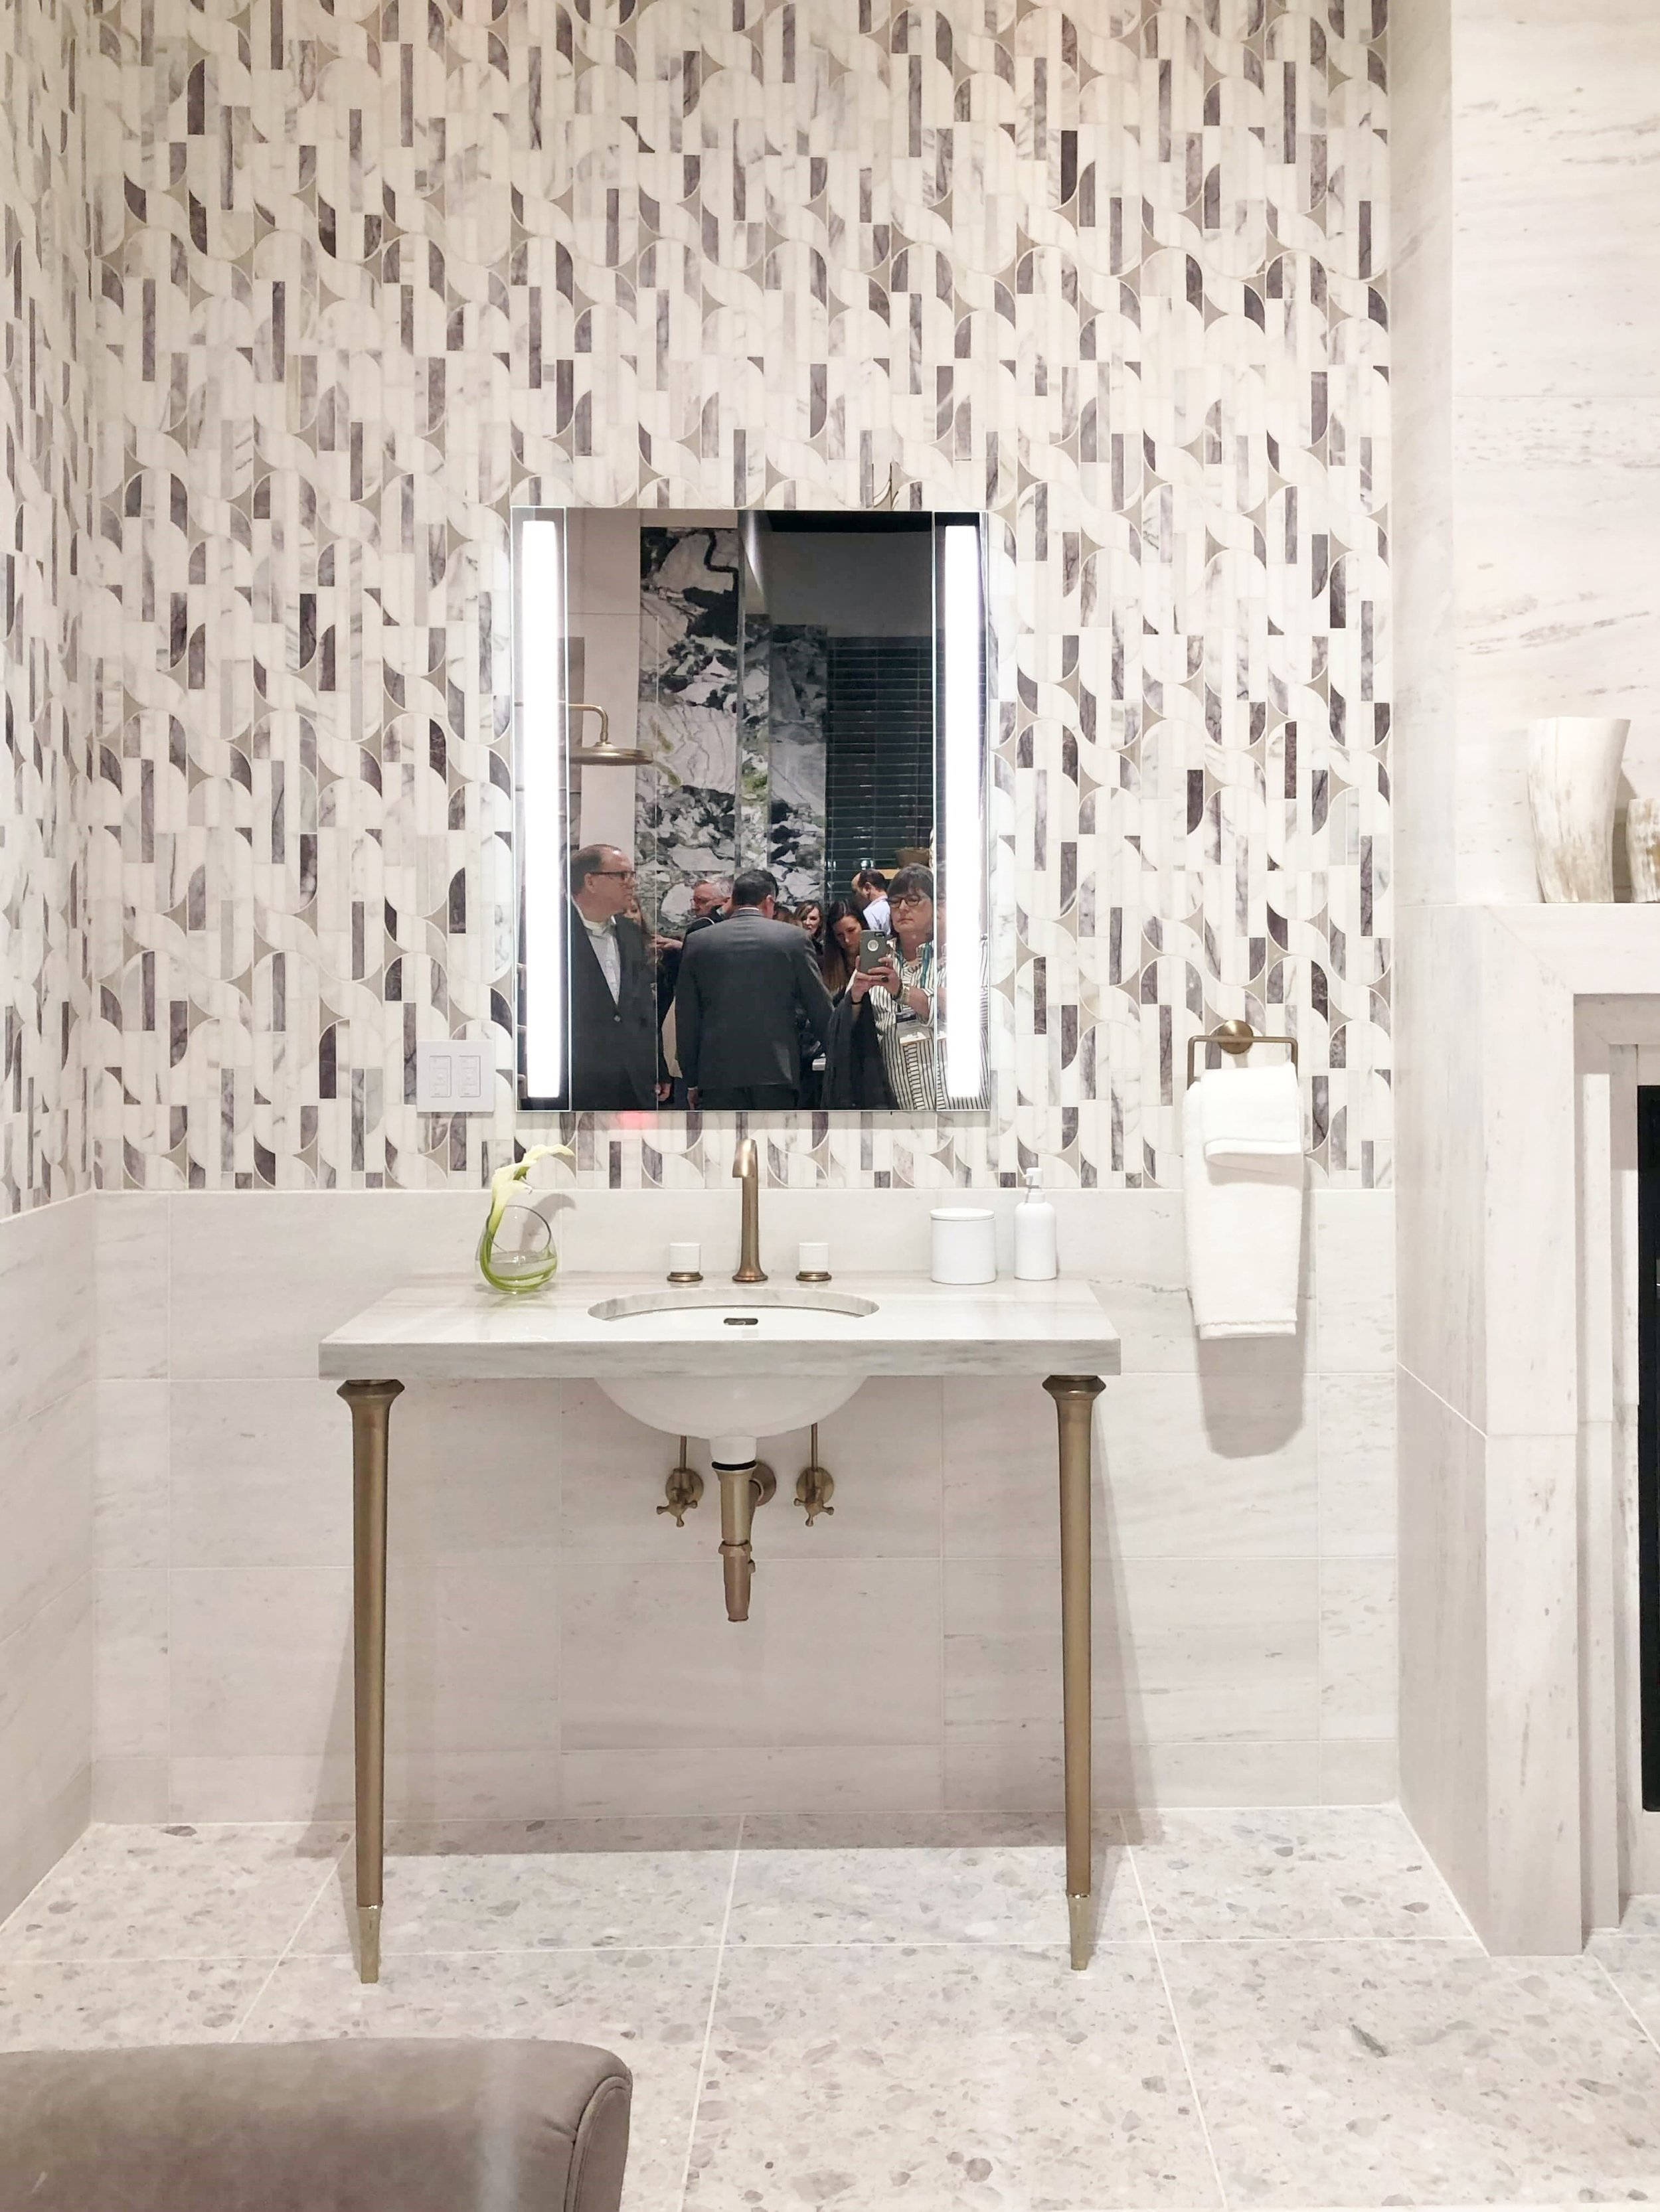 Walls of mosaic marble tile shown at Ann Sacks booth, KBIS 2019 Surfaces Trends